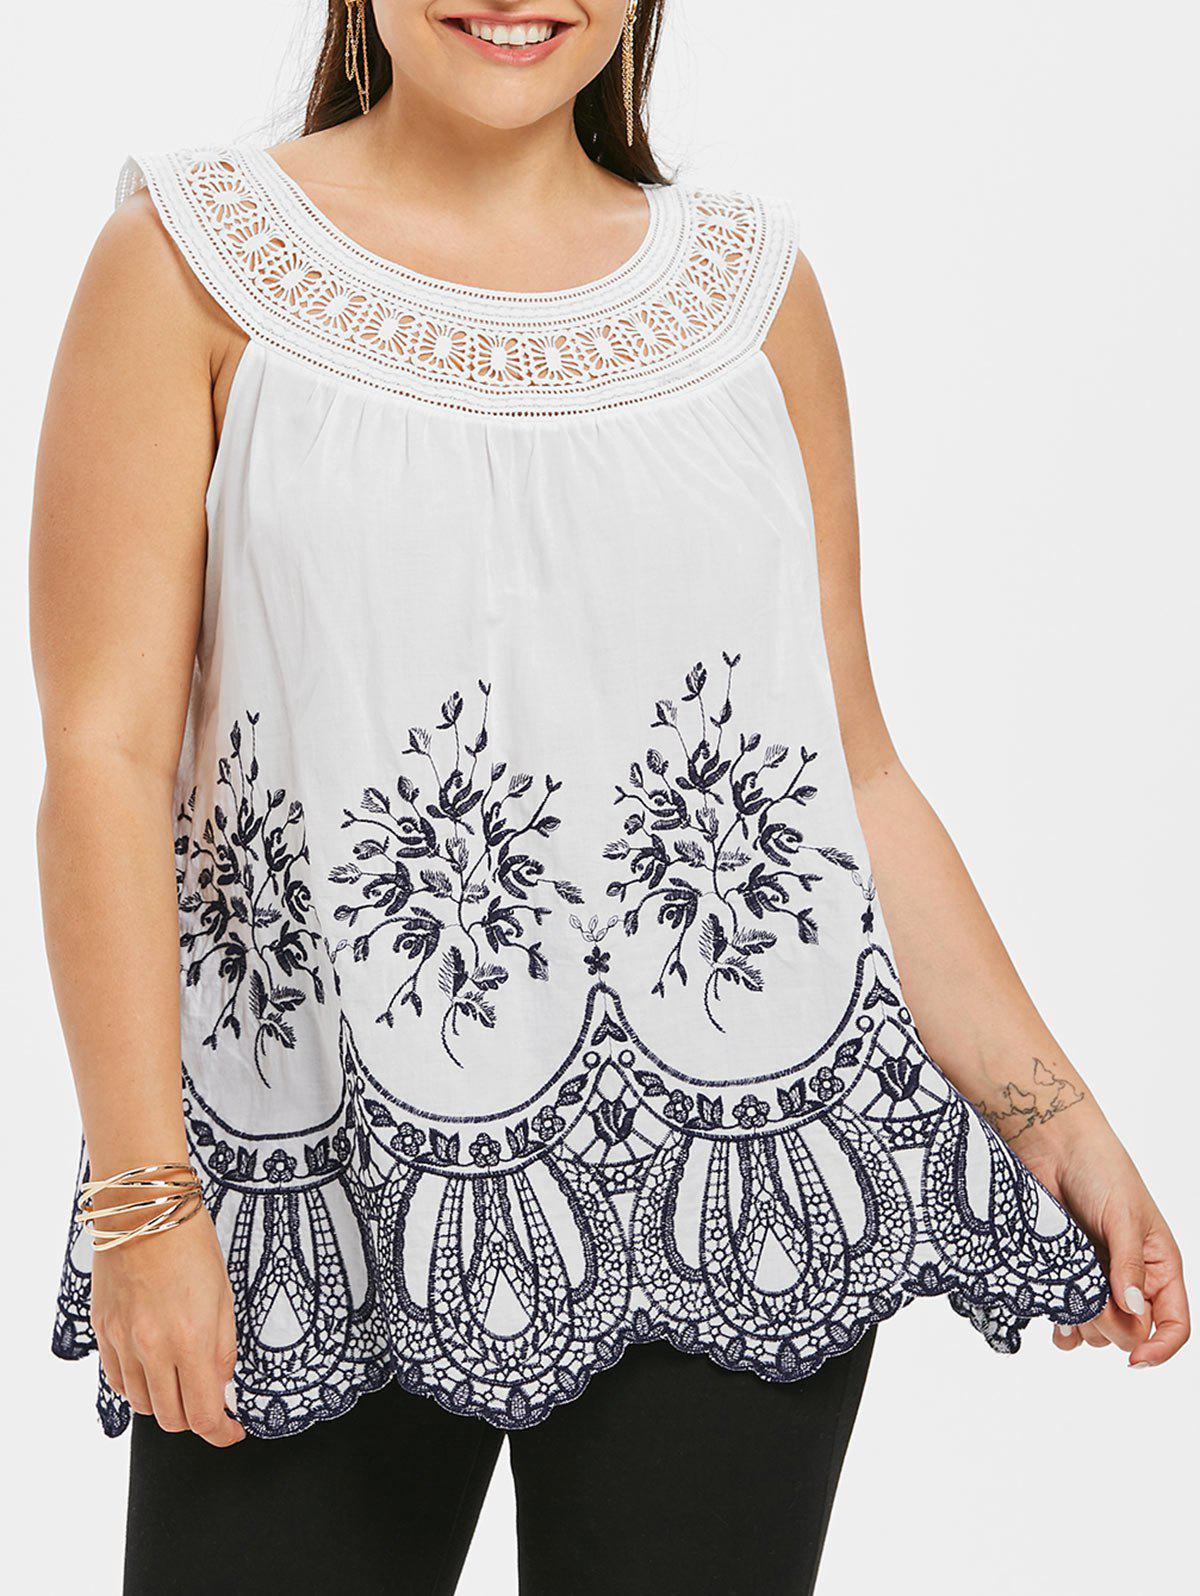 2019 Floral Embroidery Plus Size Crochet Top Rosegalcom